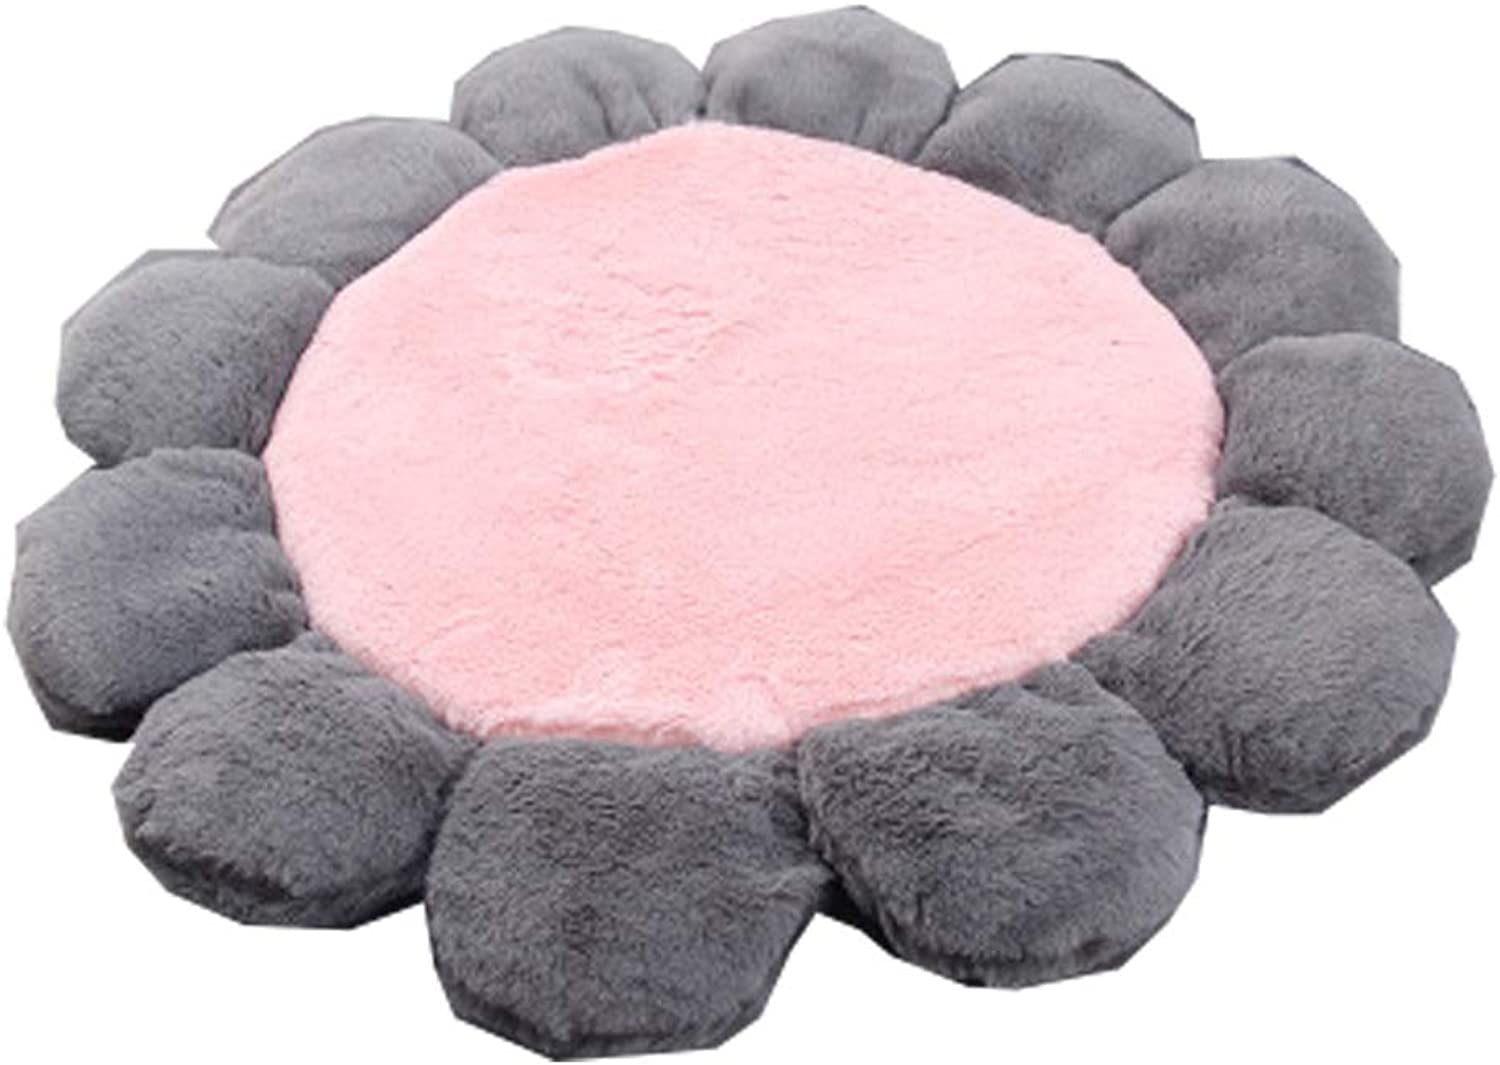 Round Dog Bed Sunflower Shape with Faux Suede Sides NonSlip Base Ultrasoft Lining